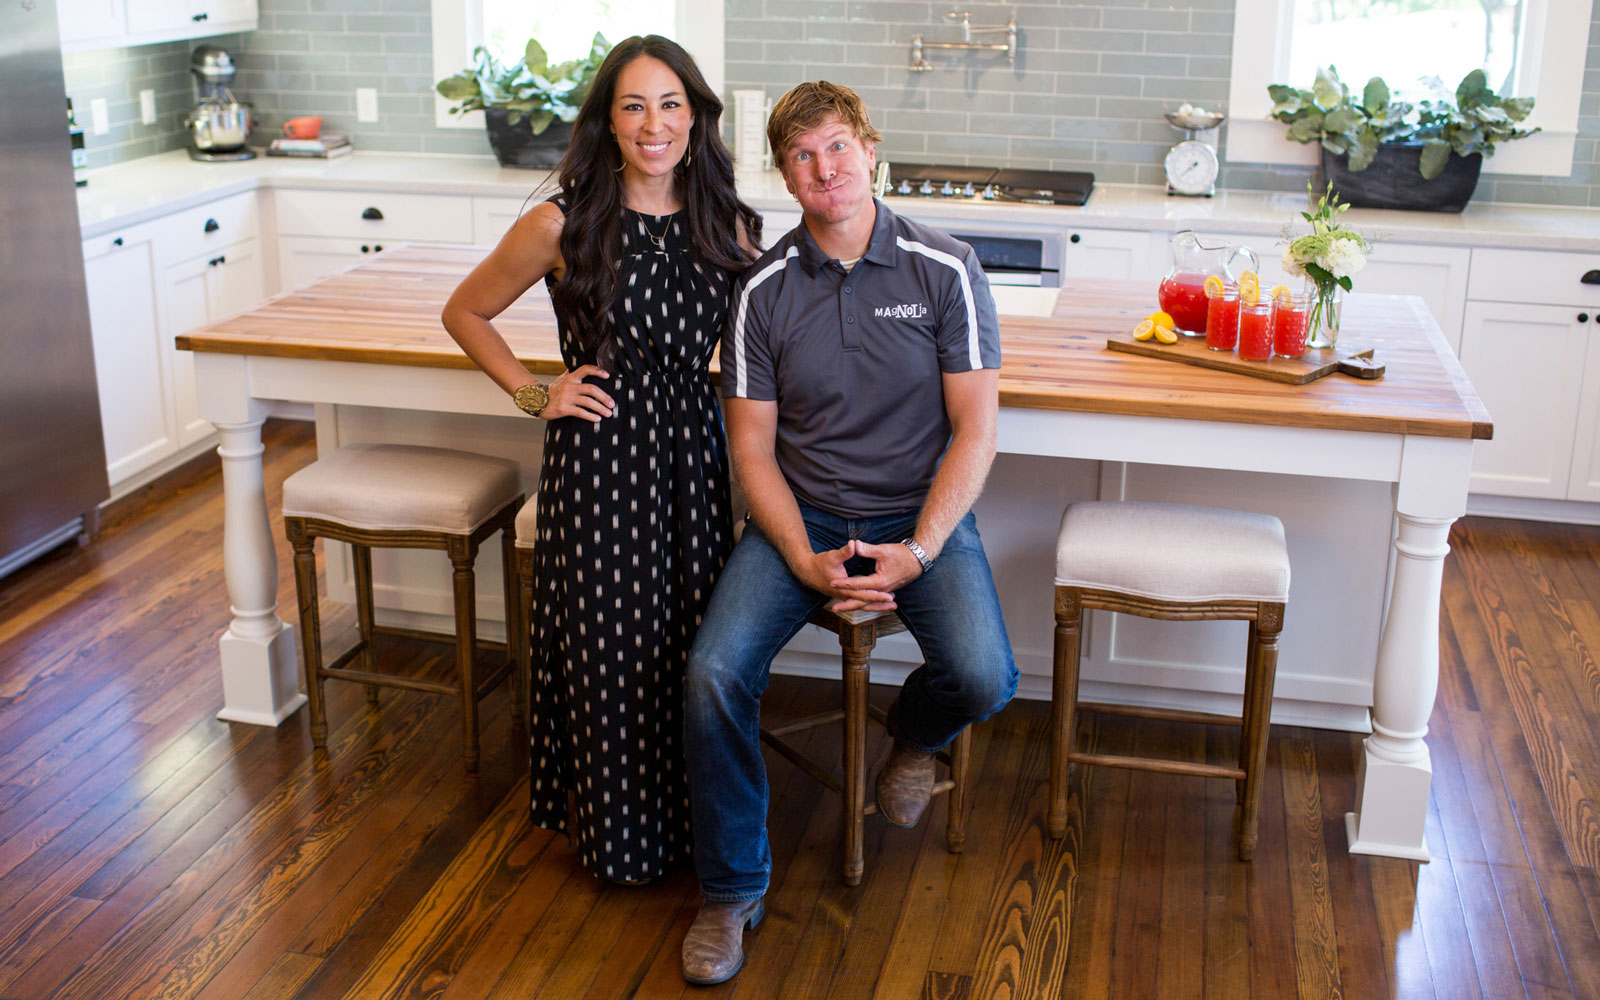 The Houses from 'Fixer Upper' Are Available to Rent